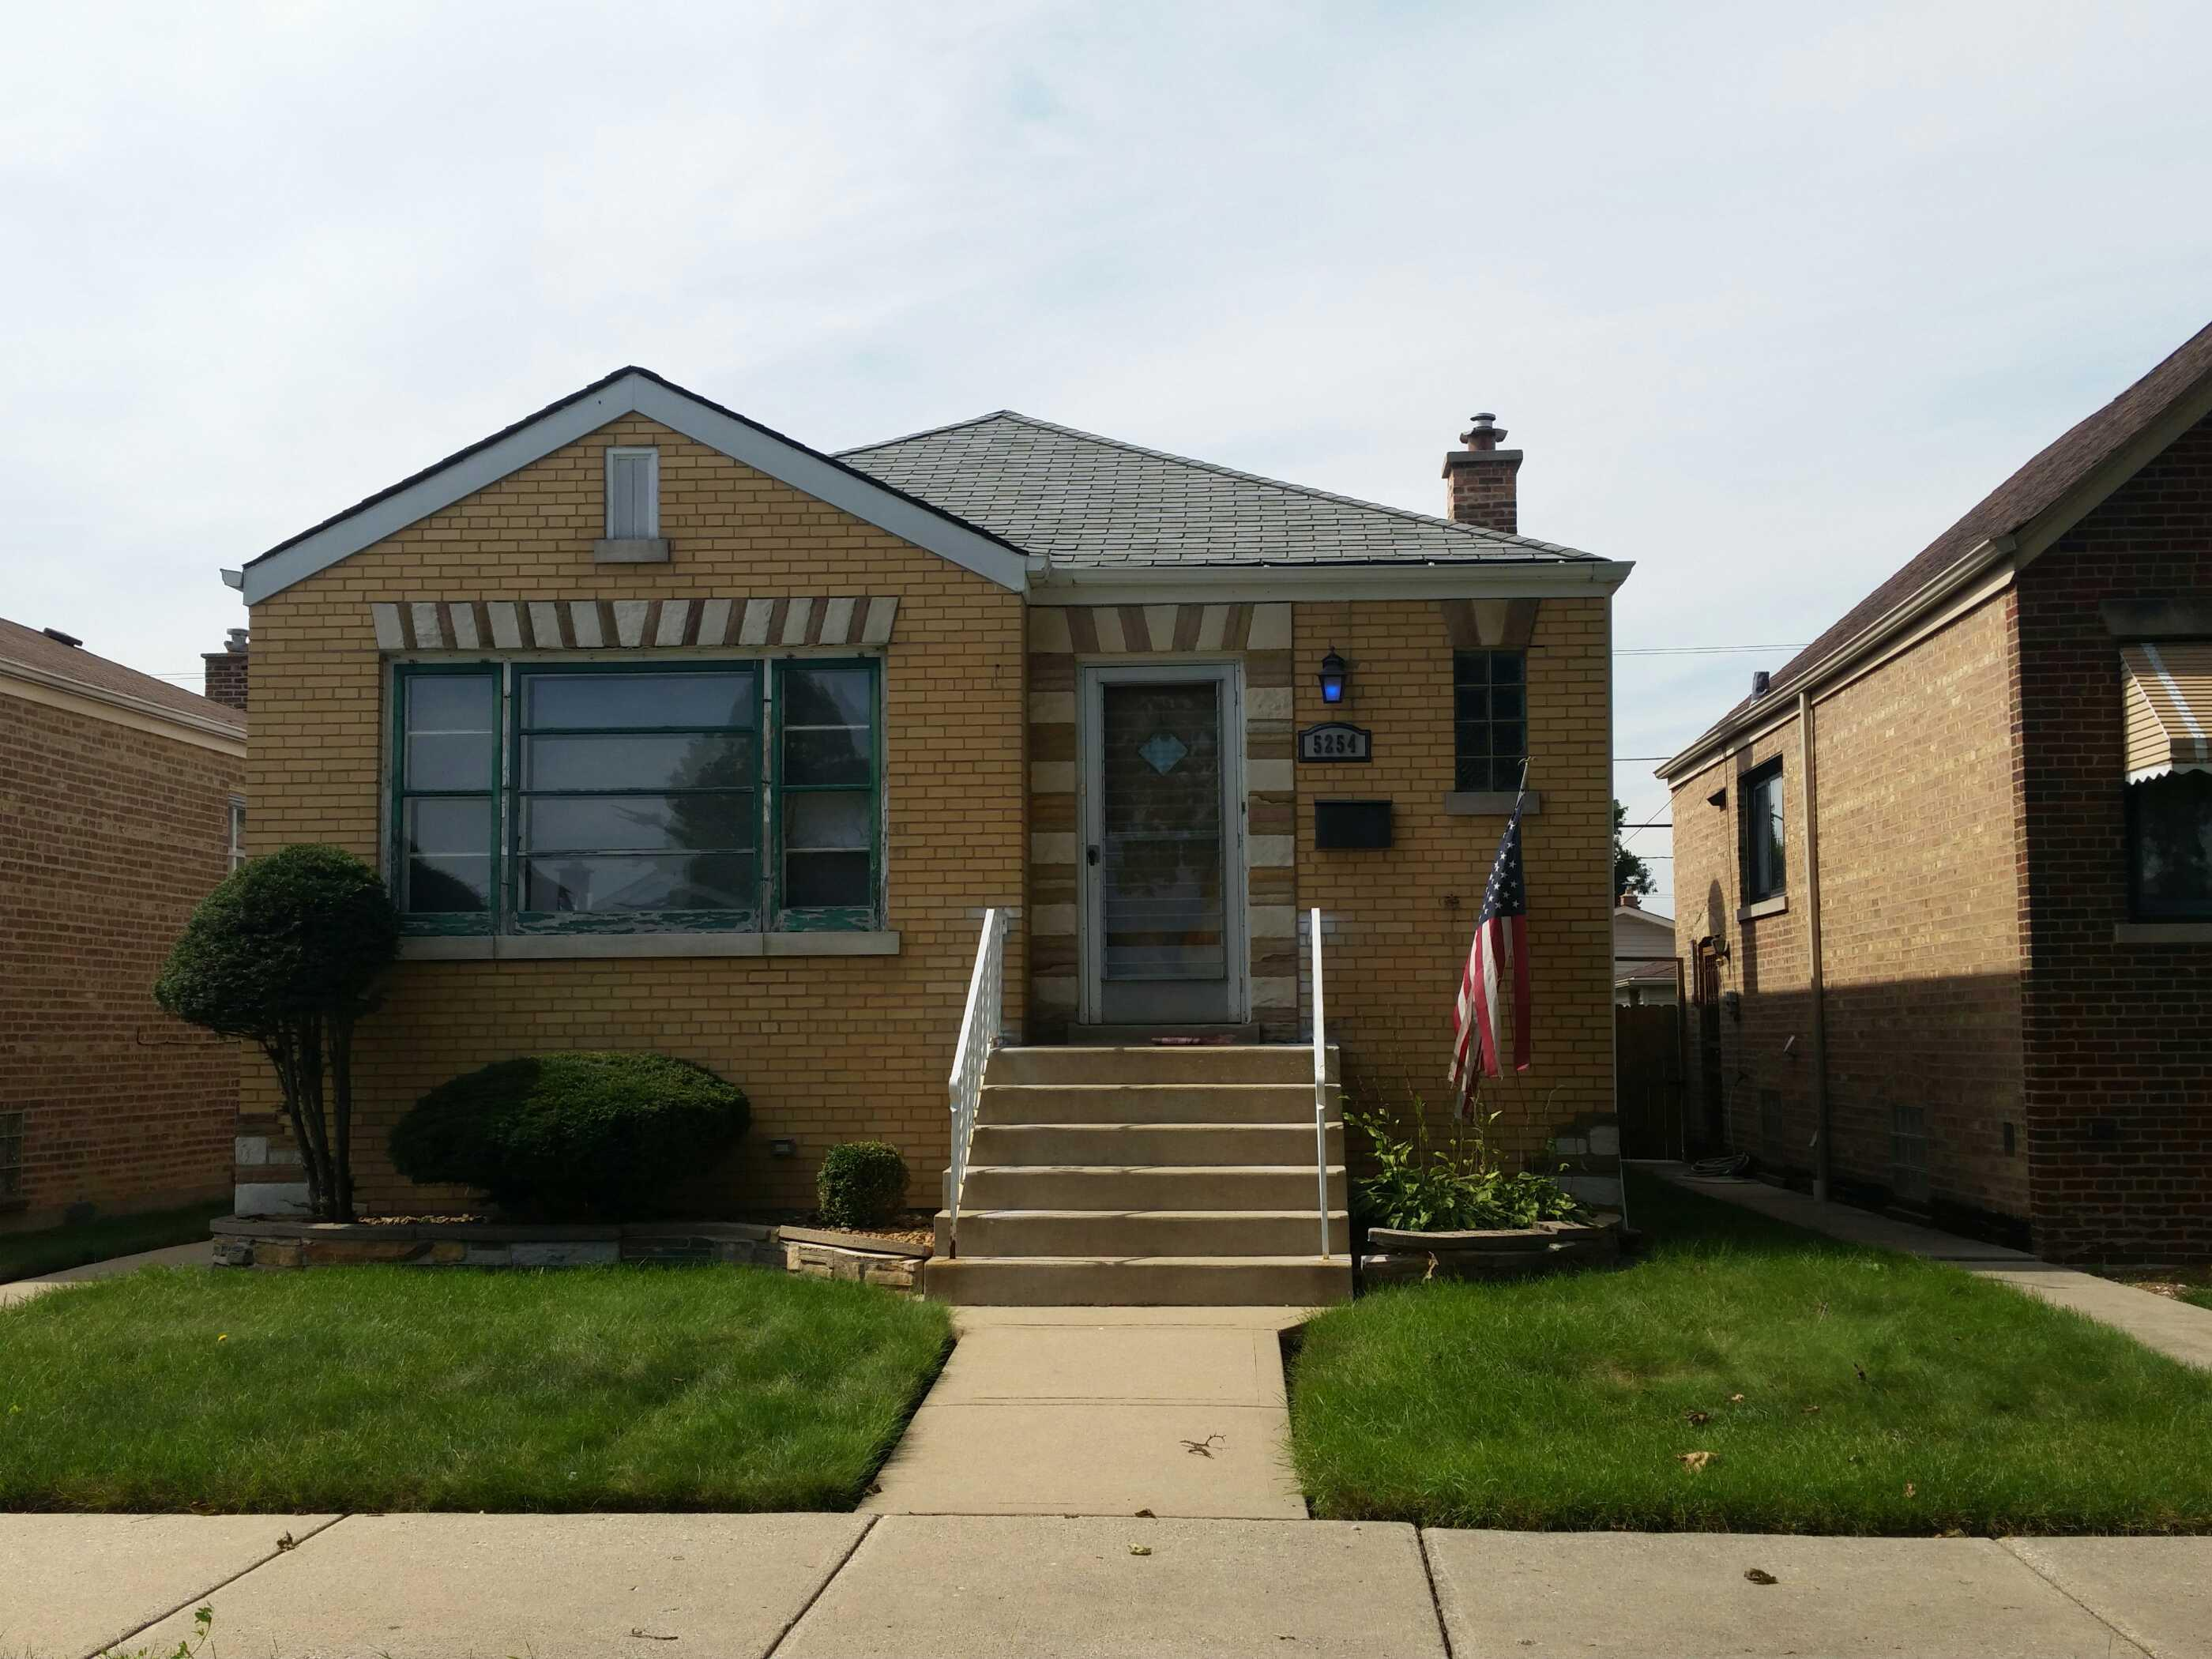 5254 S Narragansett Ave, Chicago, IL 60638